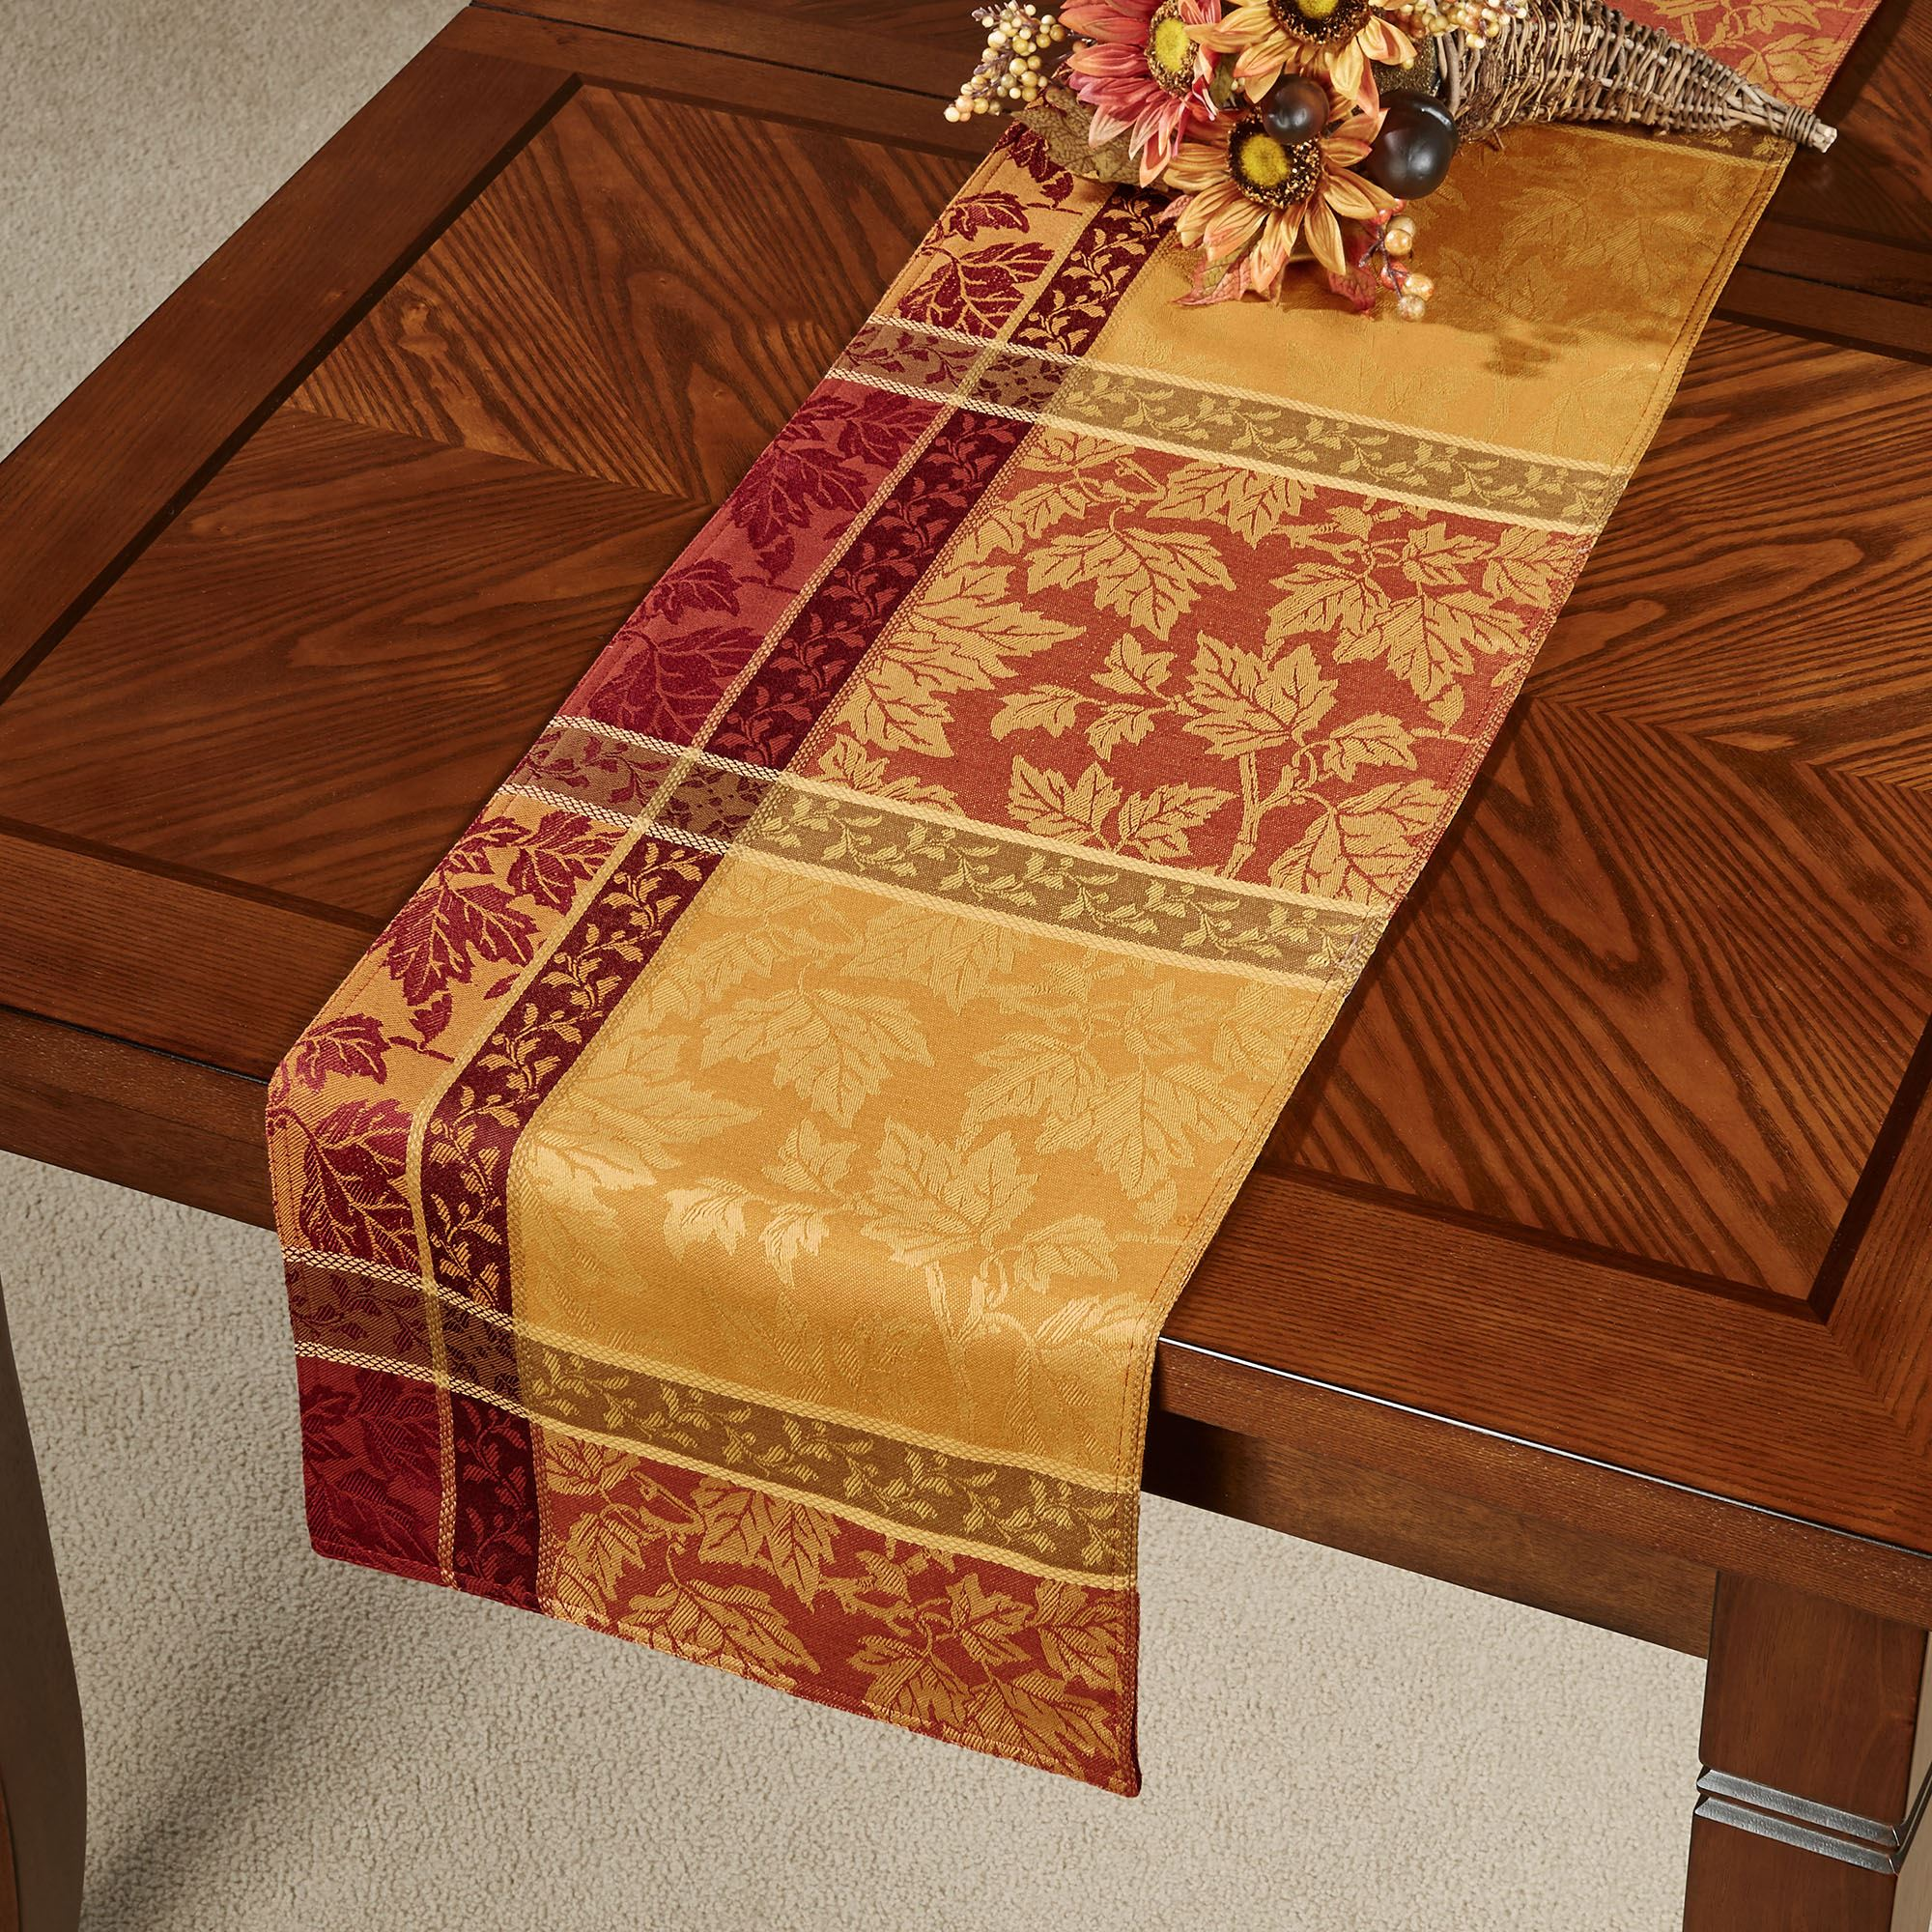 Gentil Montvale Table Runner Multi Warm 14 X 70